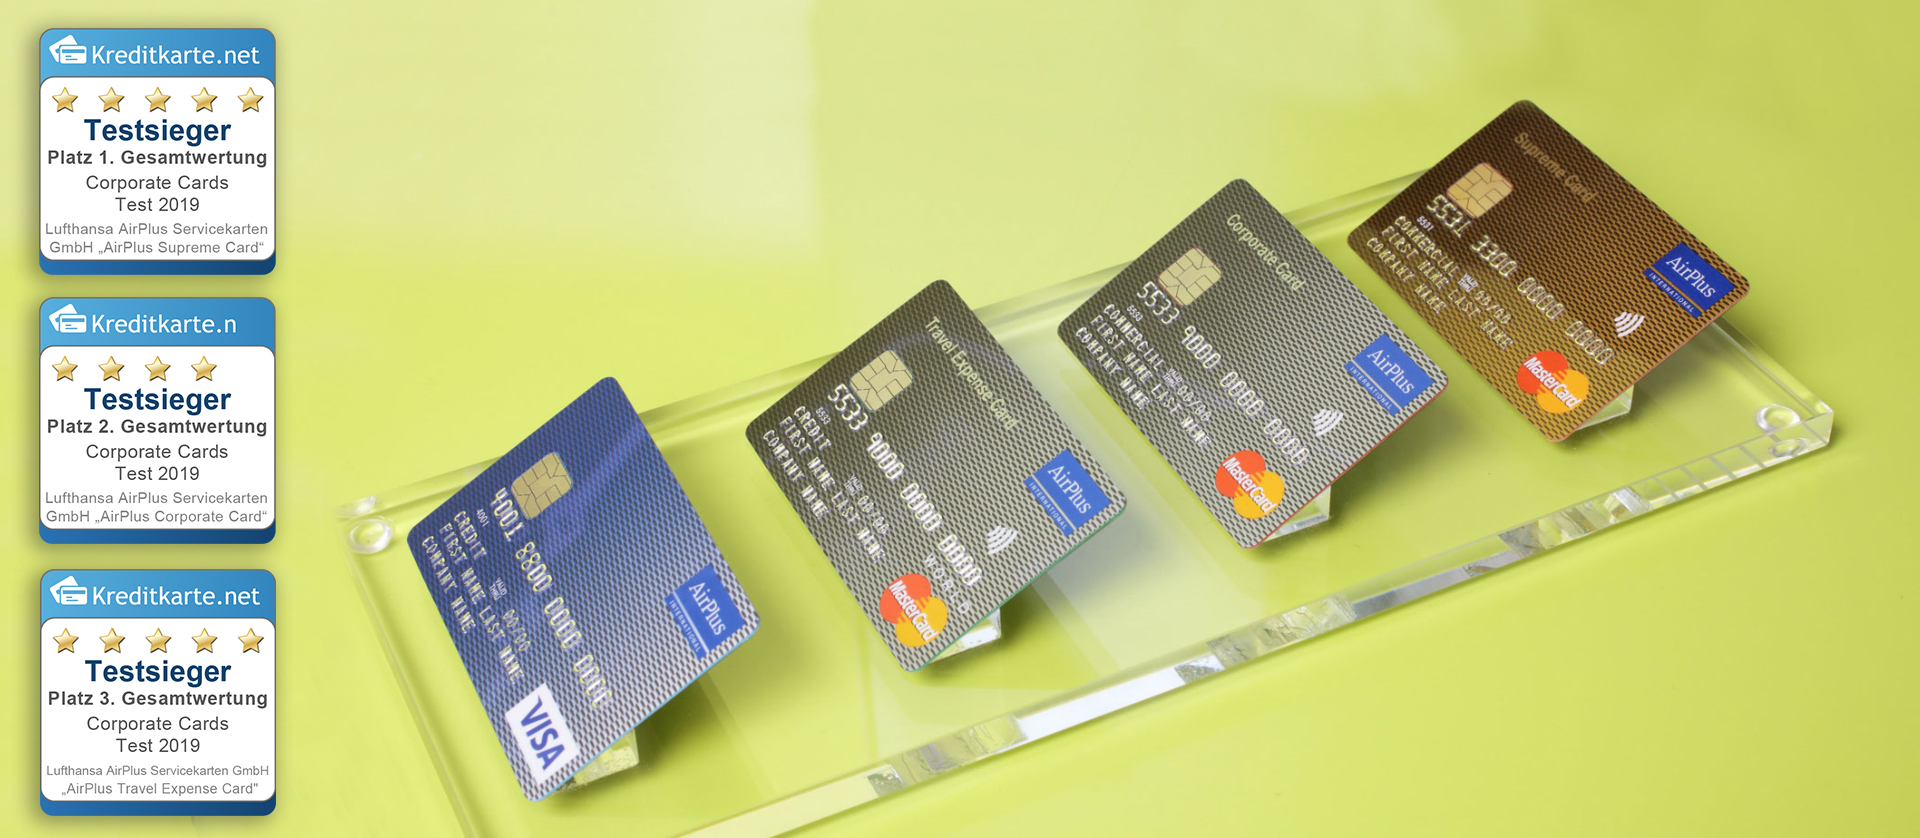 AirPlus credit cards are winners of of the portal kreditkarte.net